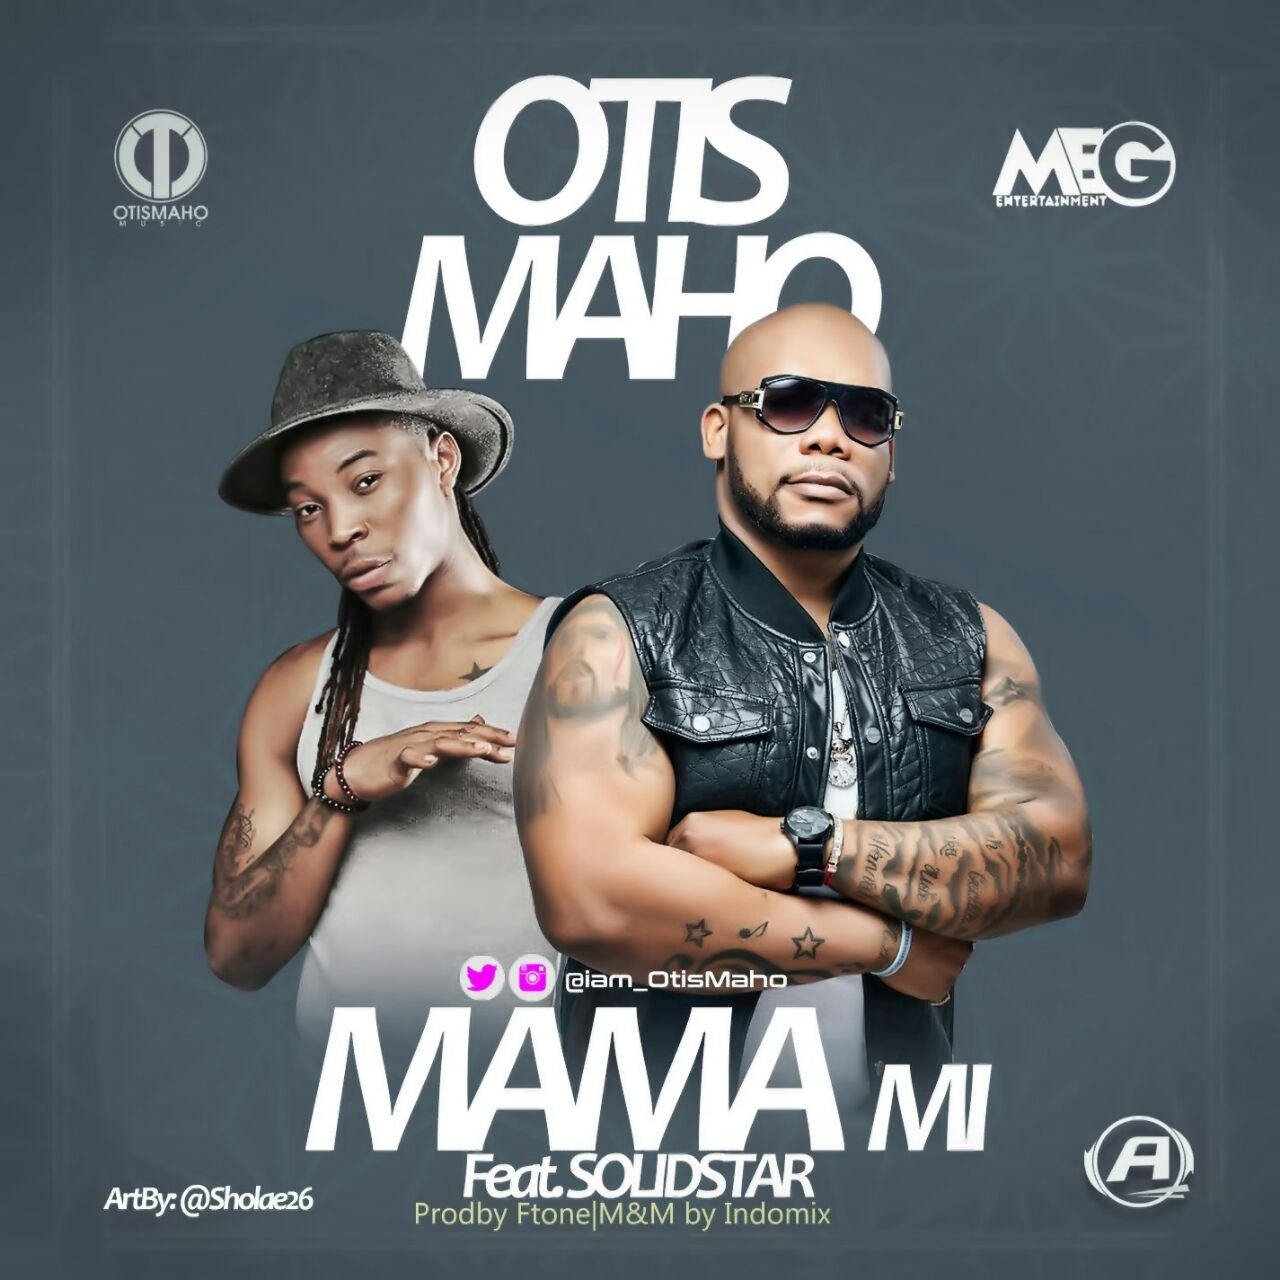 otis-maho-ft-solidstar-mamami-art